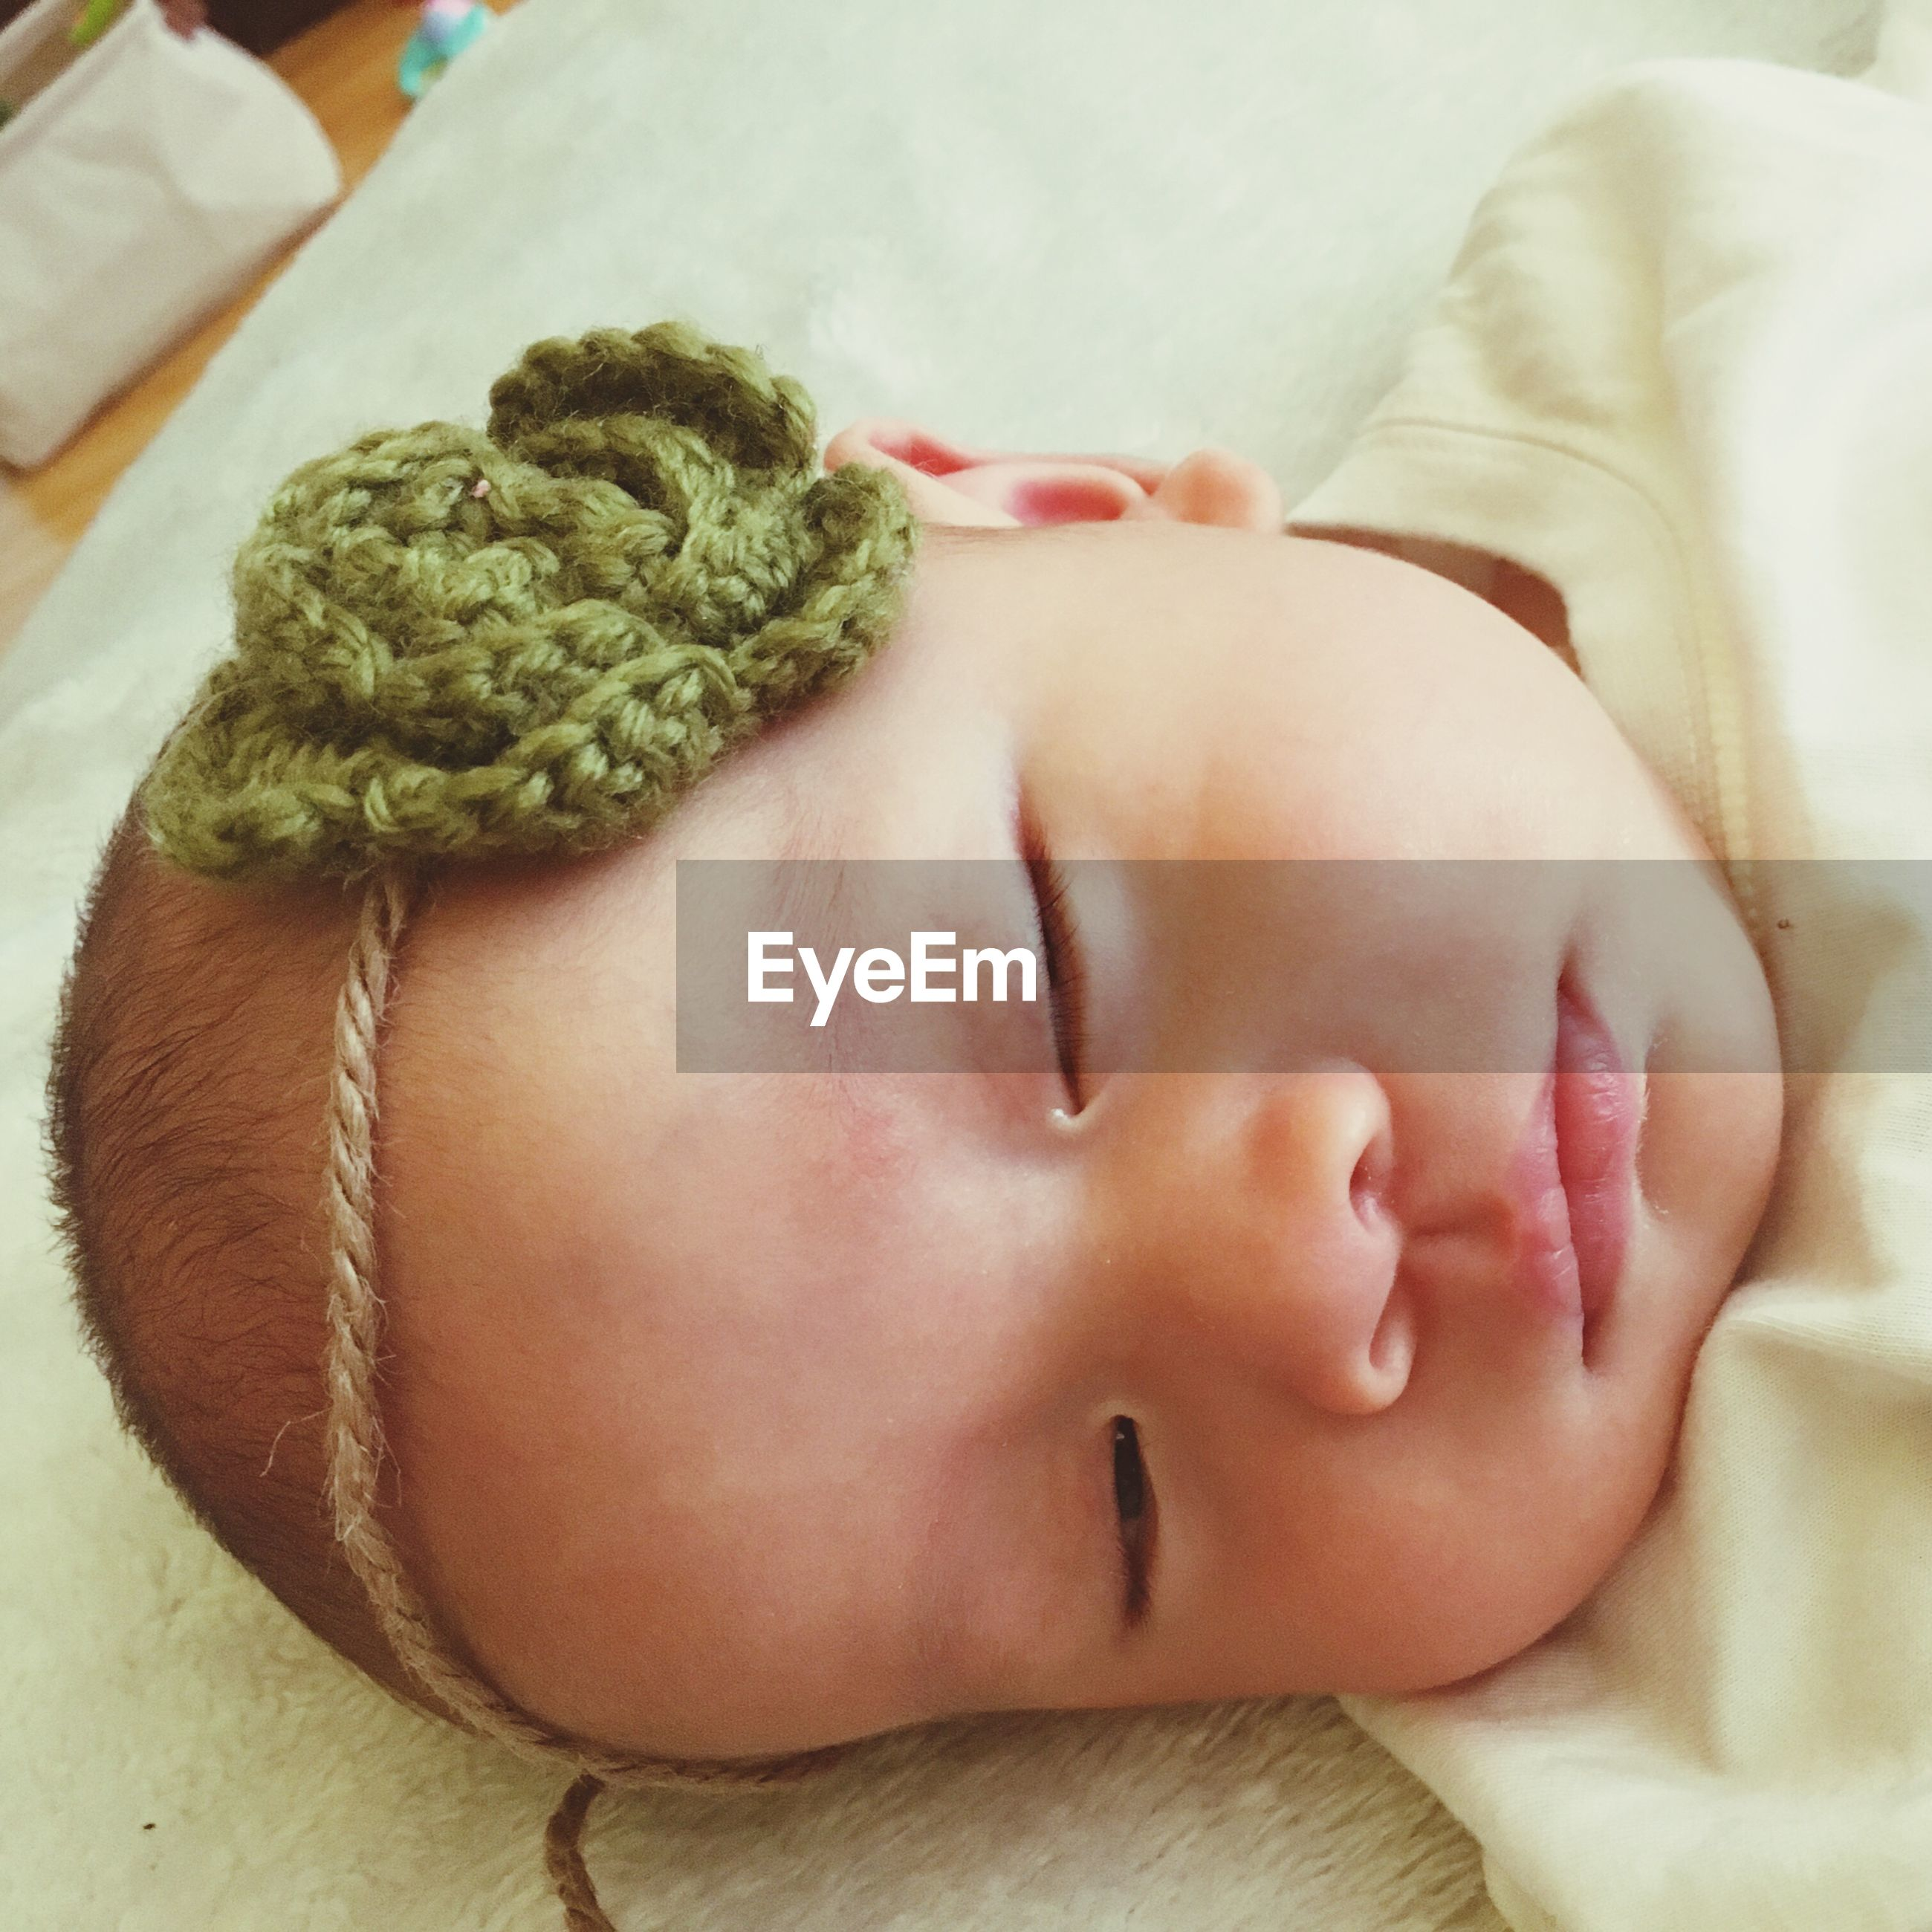 childhood, baby, innocence, babyhood, cute, indoors, sleeping, toddler, relaxation, bed, lying down, close-up, elementary age, unknown gender, eyes closed, lifestyles, new life, resting